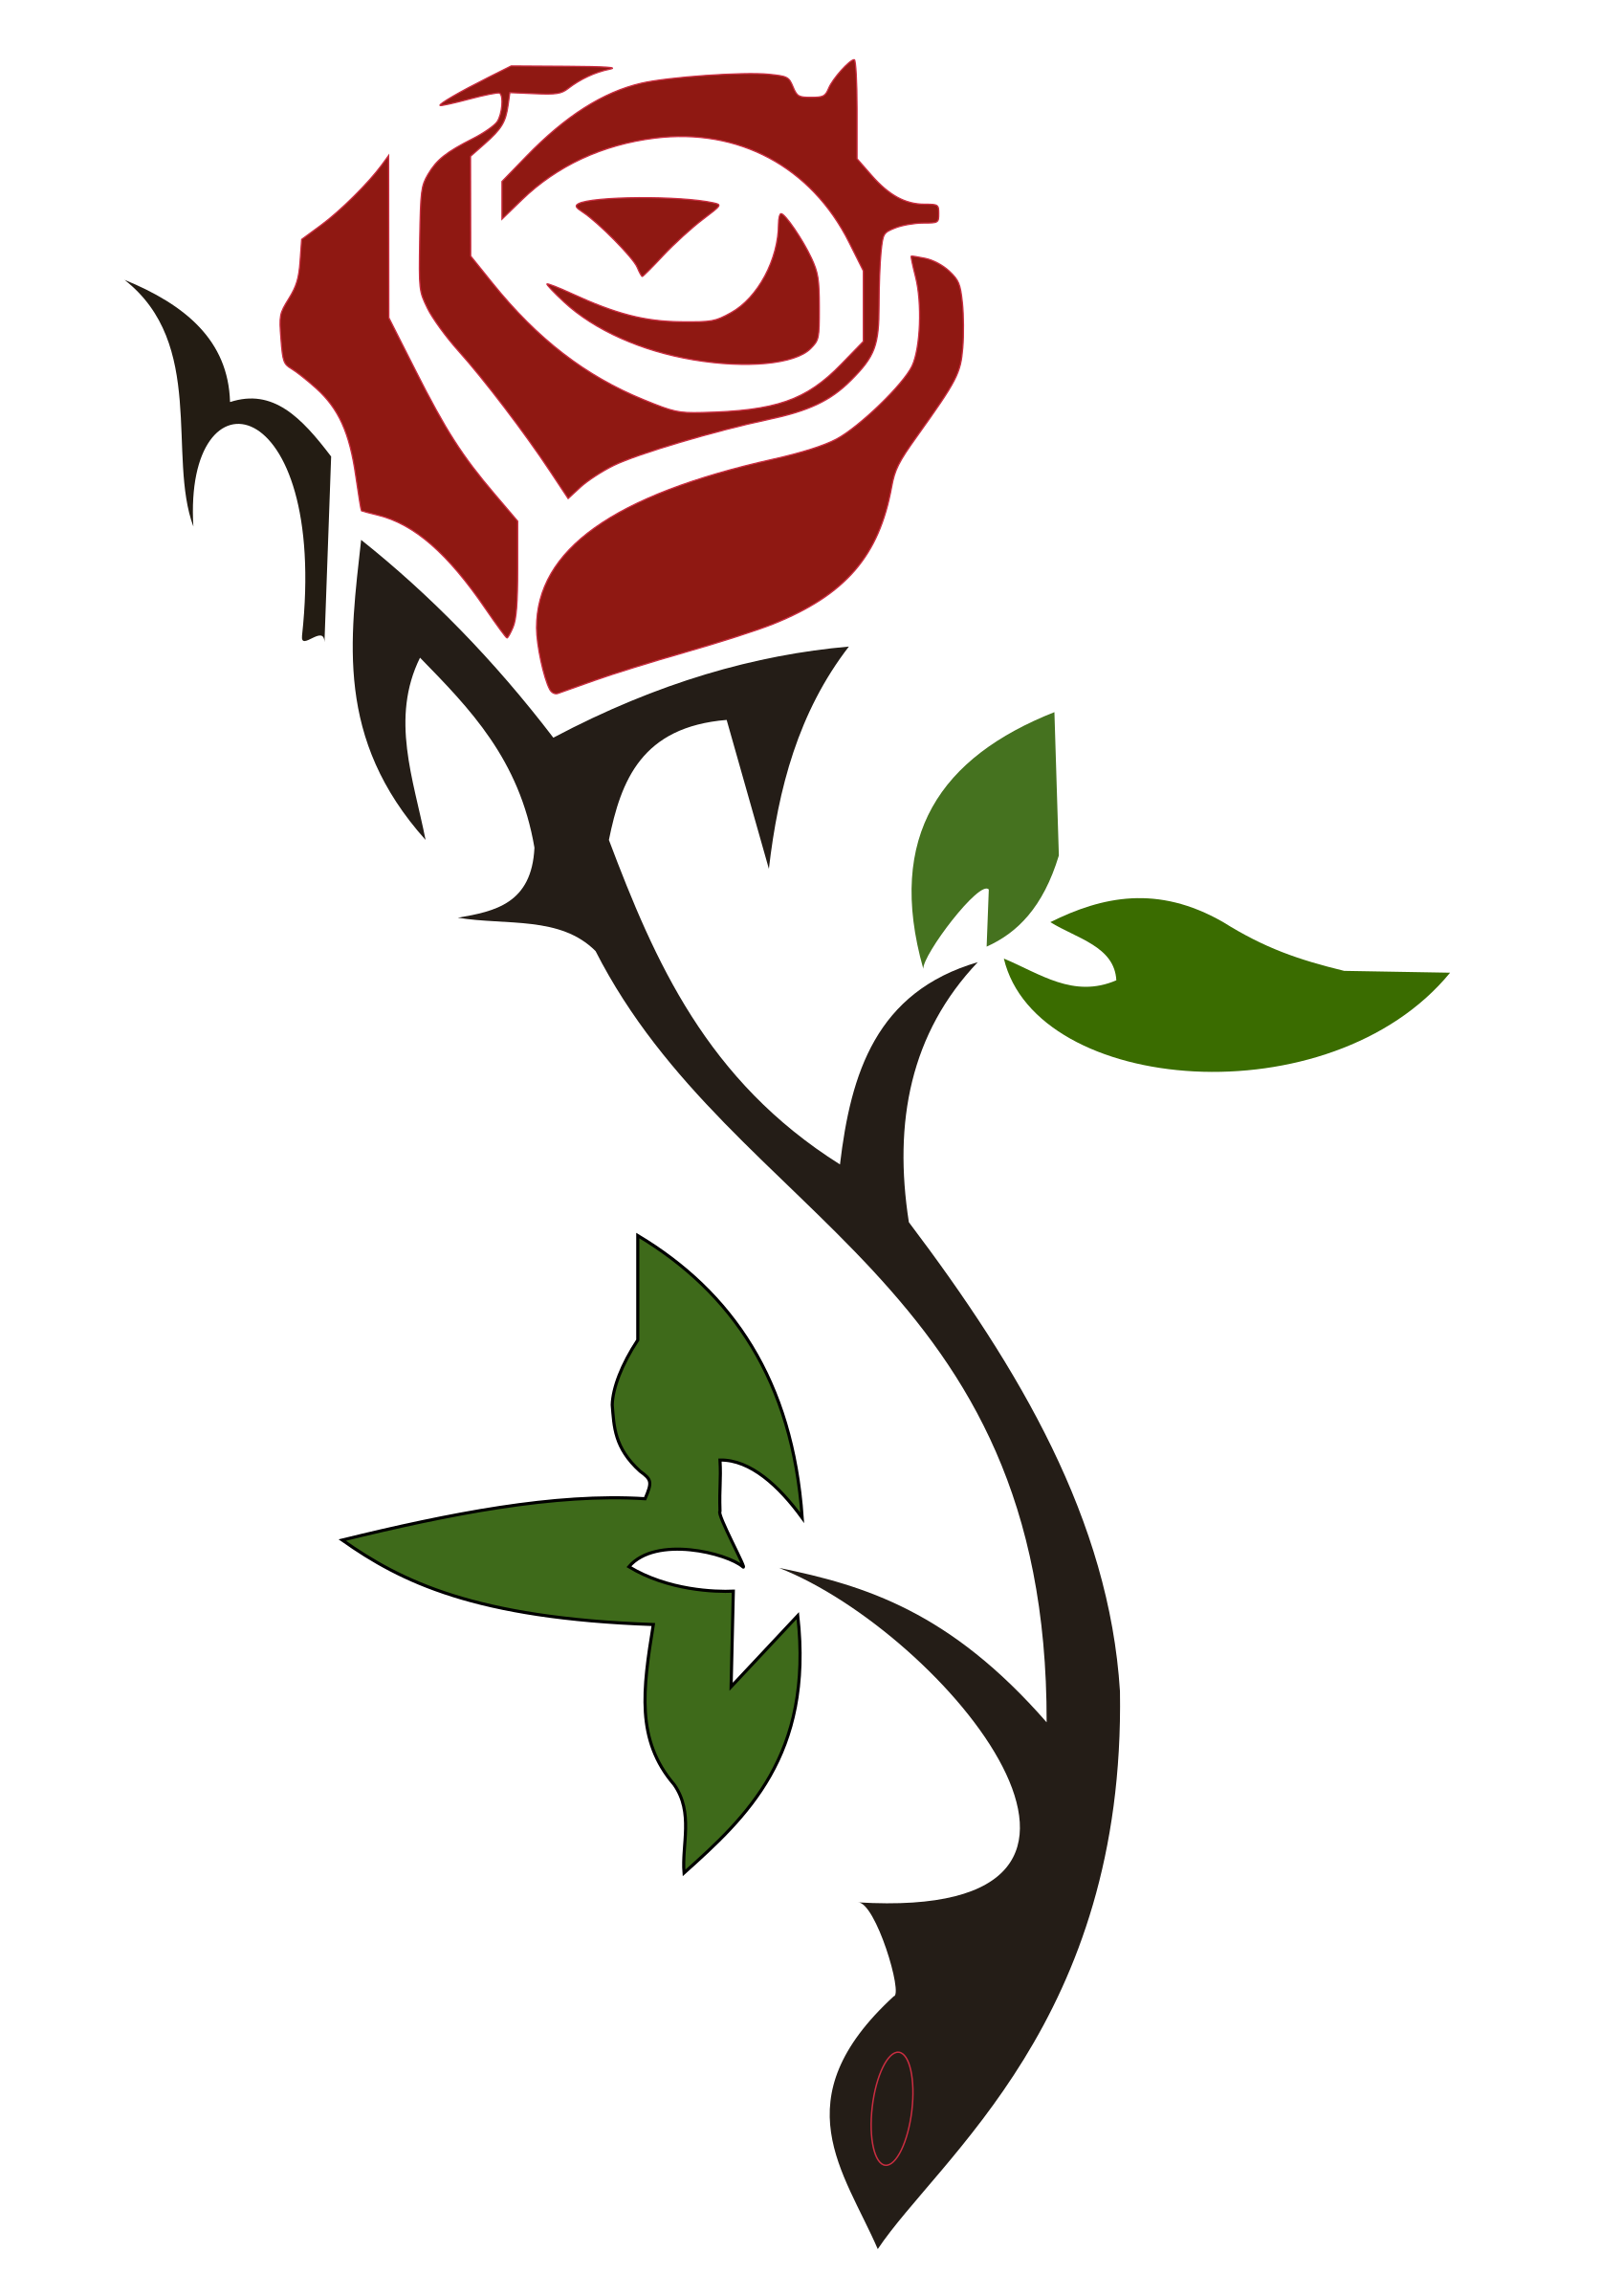 Simple Rose by Misael.Vasconcelos